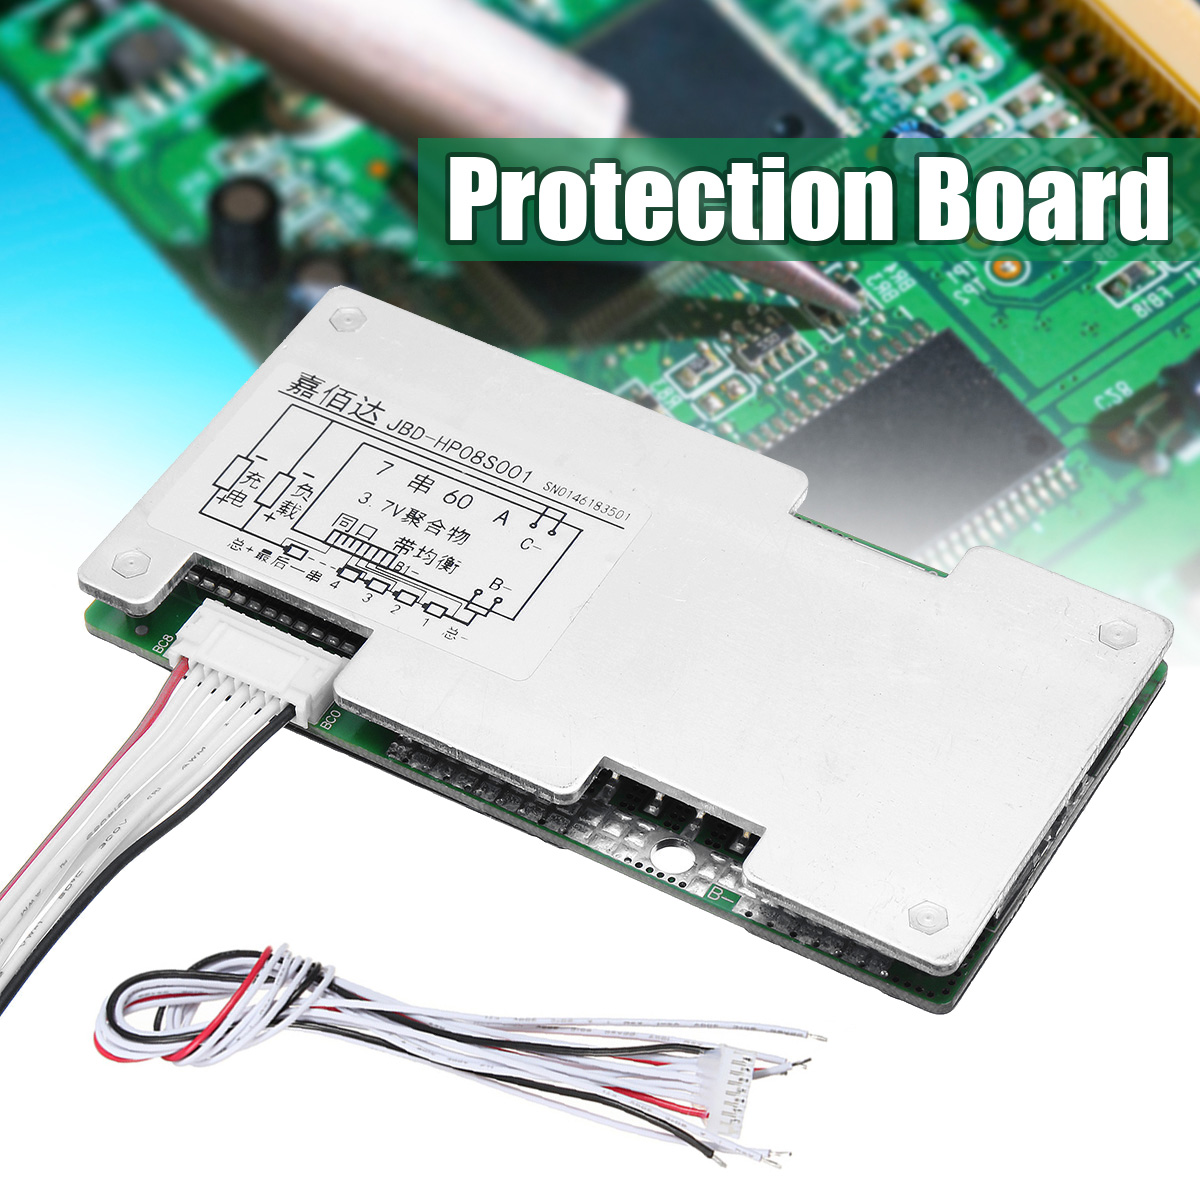 Hot Sale 7s 24v Li ion Lithium Cell 60A 18650 Battery Protection Board with Balance 110x55x9mm